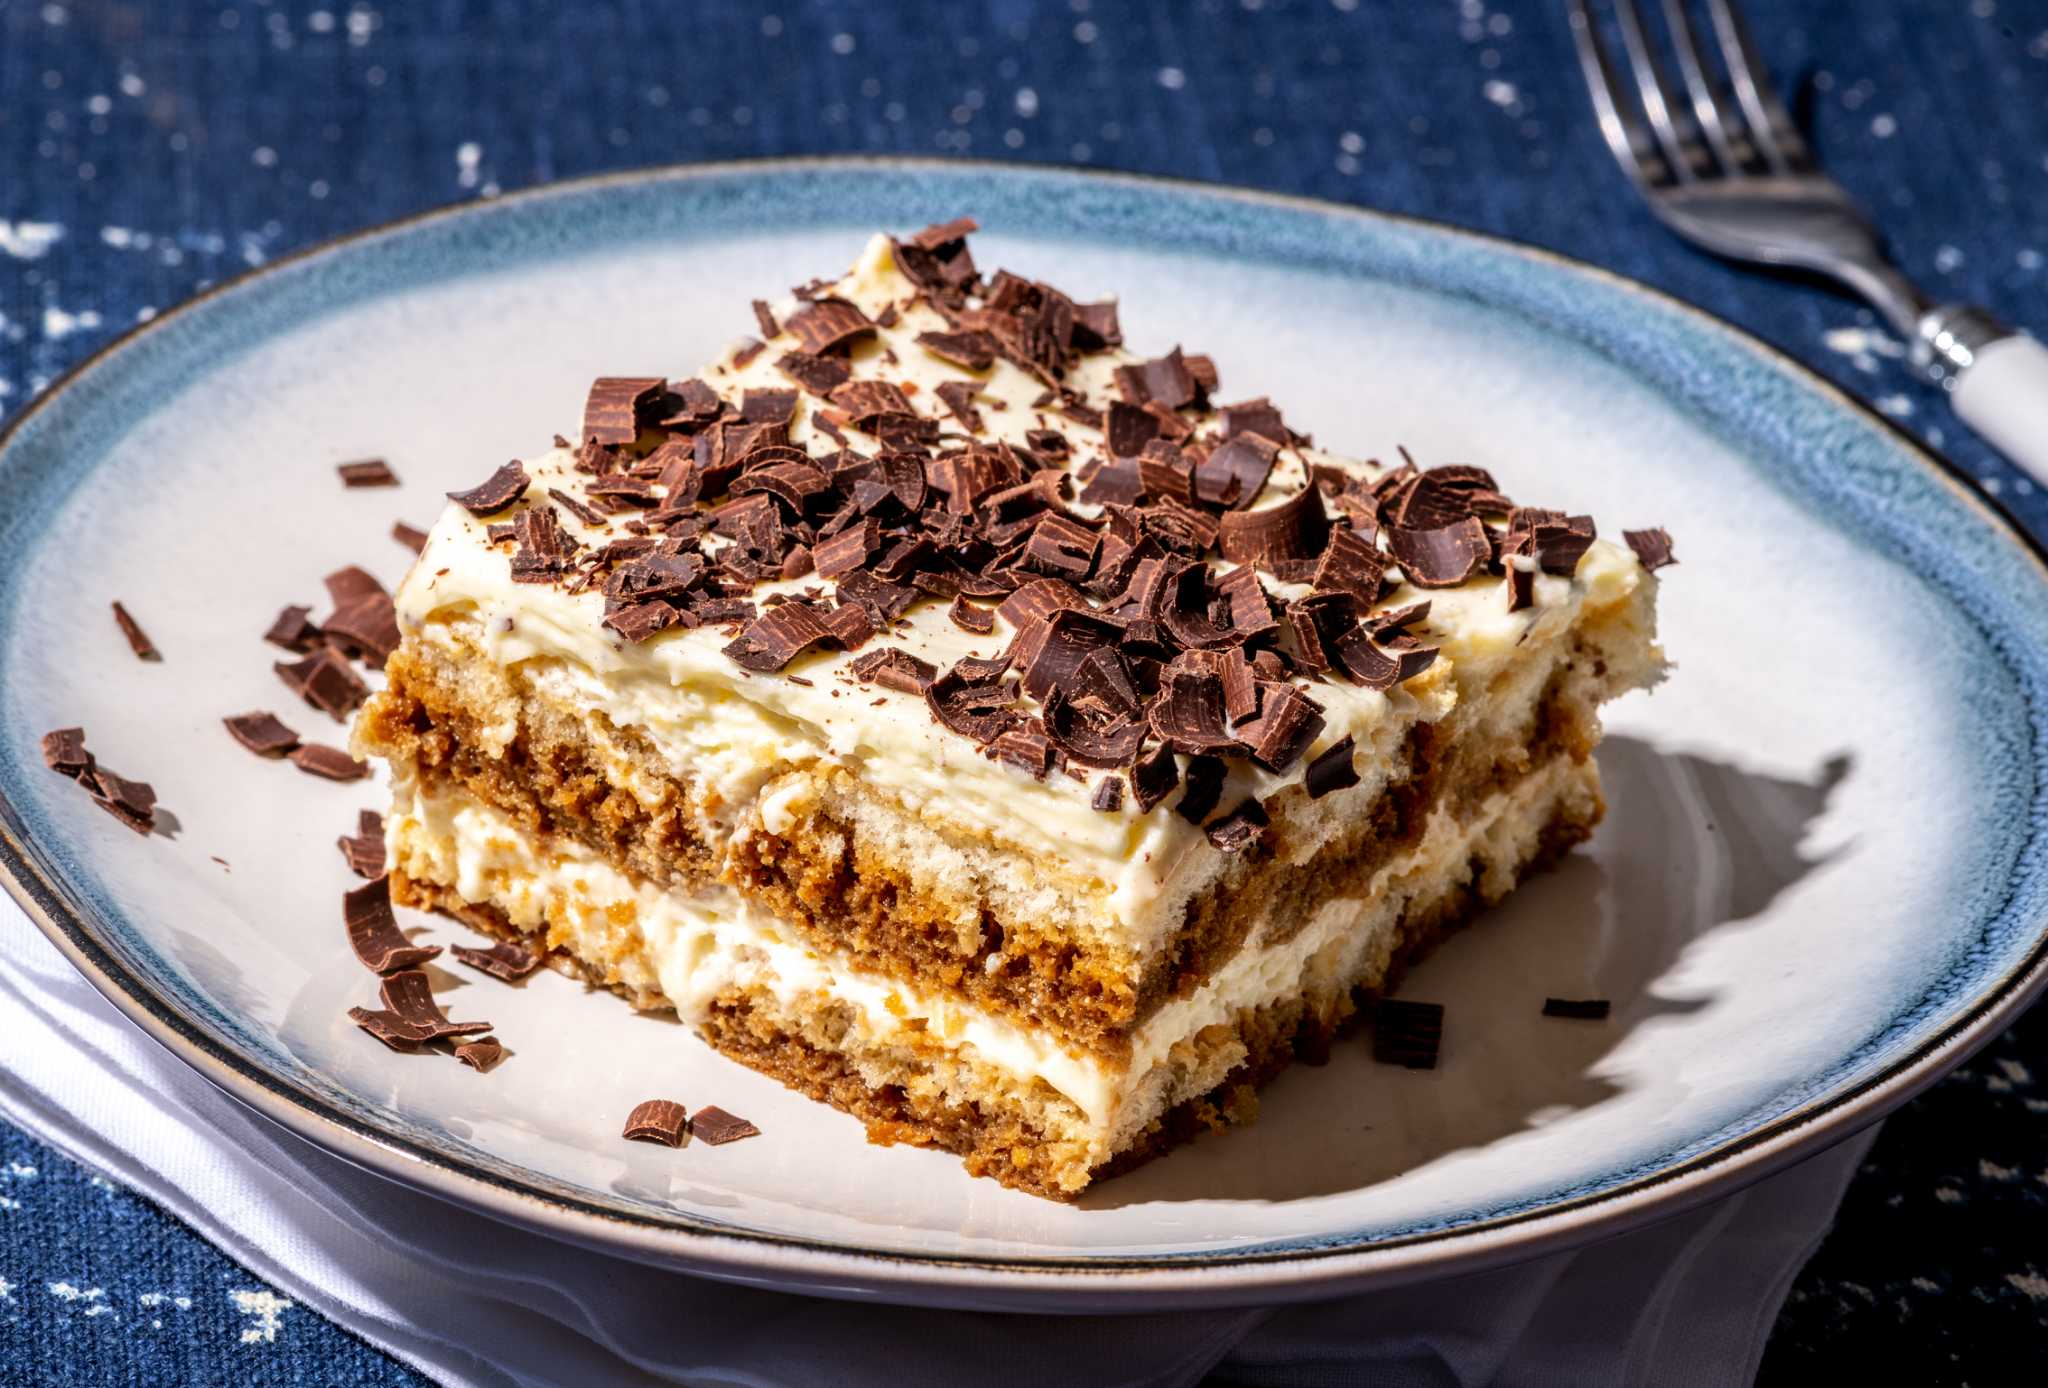 Let's bring back tiramisu, a classic dessert that deserves more love